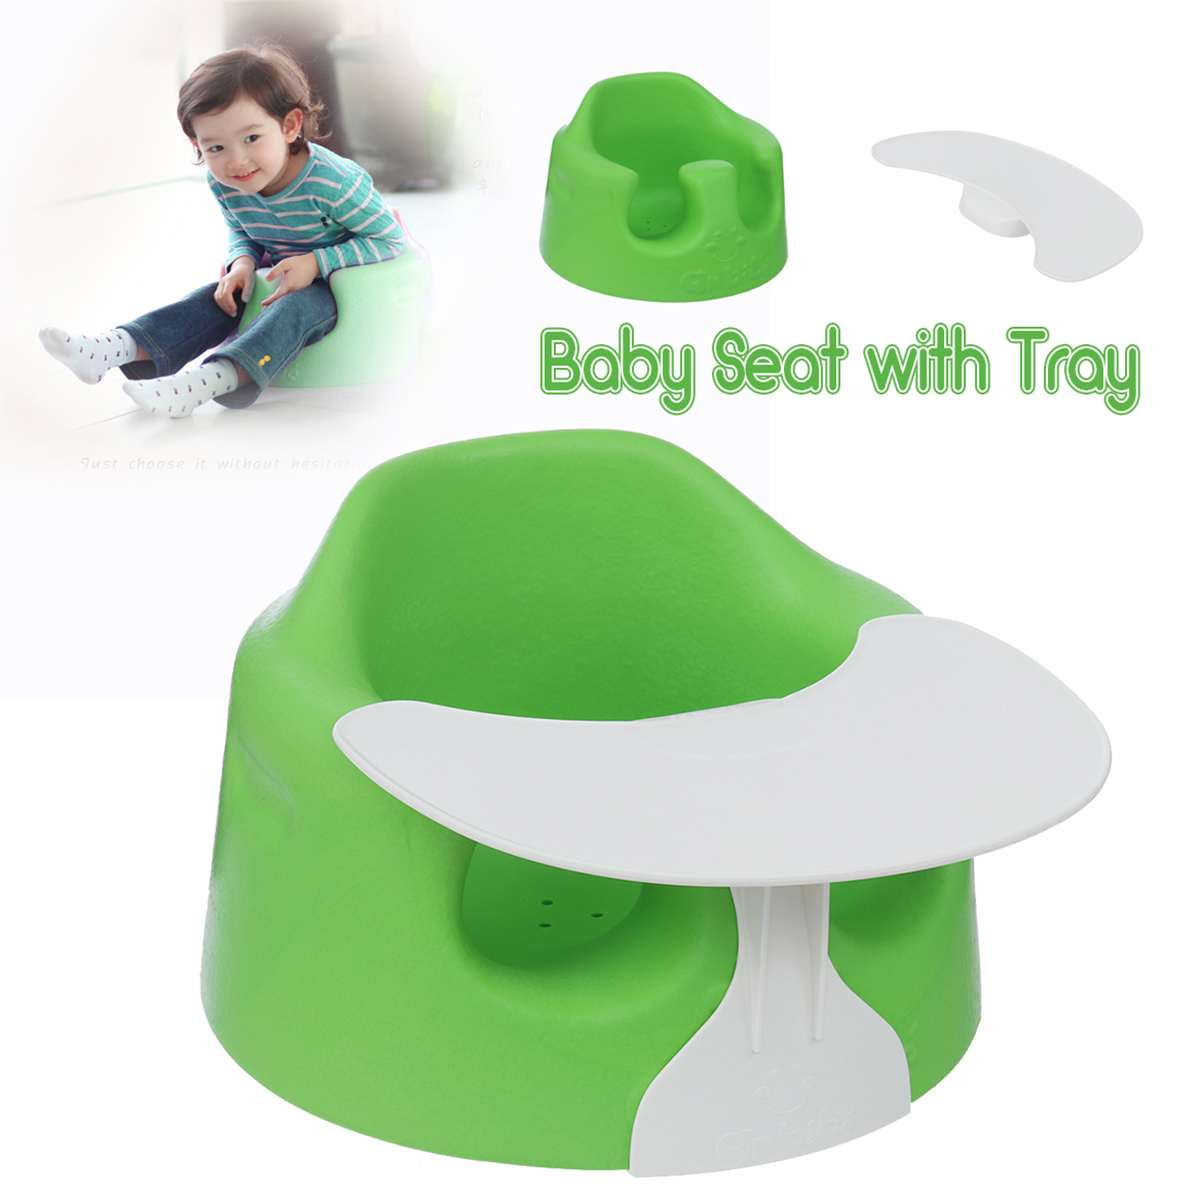 Education Baby Seat Chair Baby Booster Seat High Chair Detachable Tray Children Booster Safety infant Chair Feeding SeatEducation Baby Seat Chair Baby Booster Seat High Chair Detachable Tray Children Booster Safety infant Chair Feeding Seat